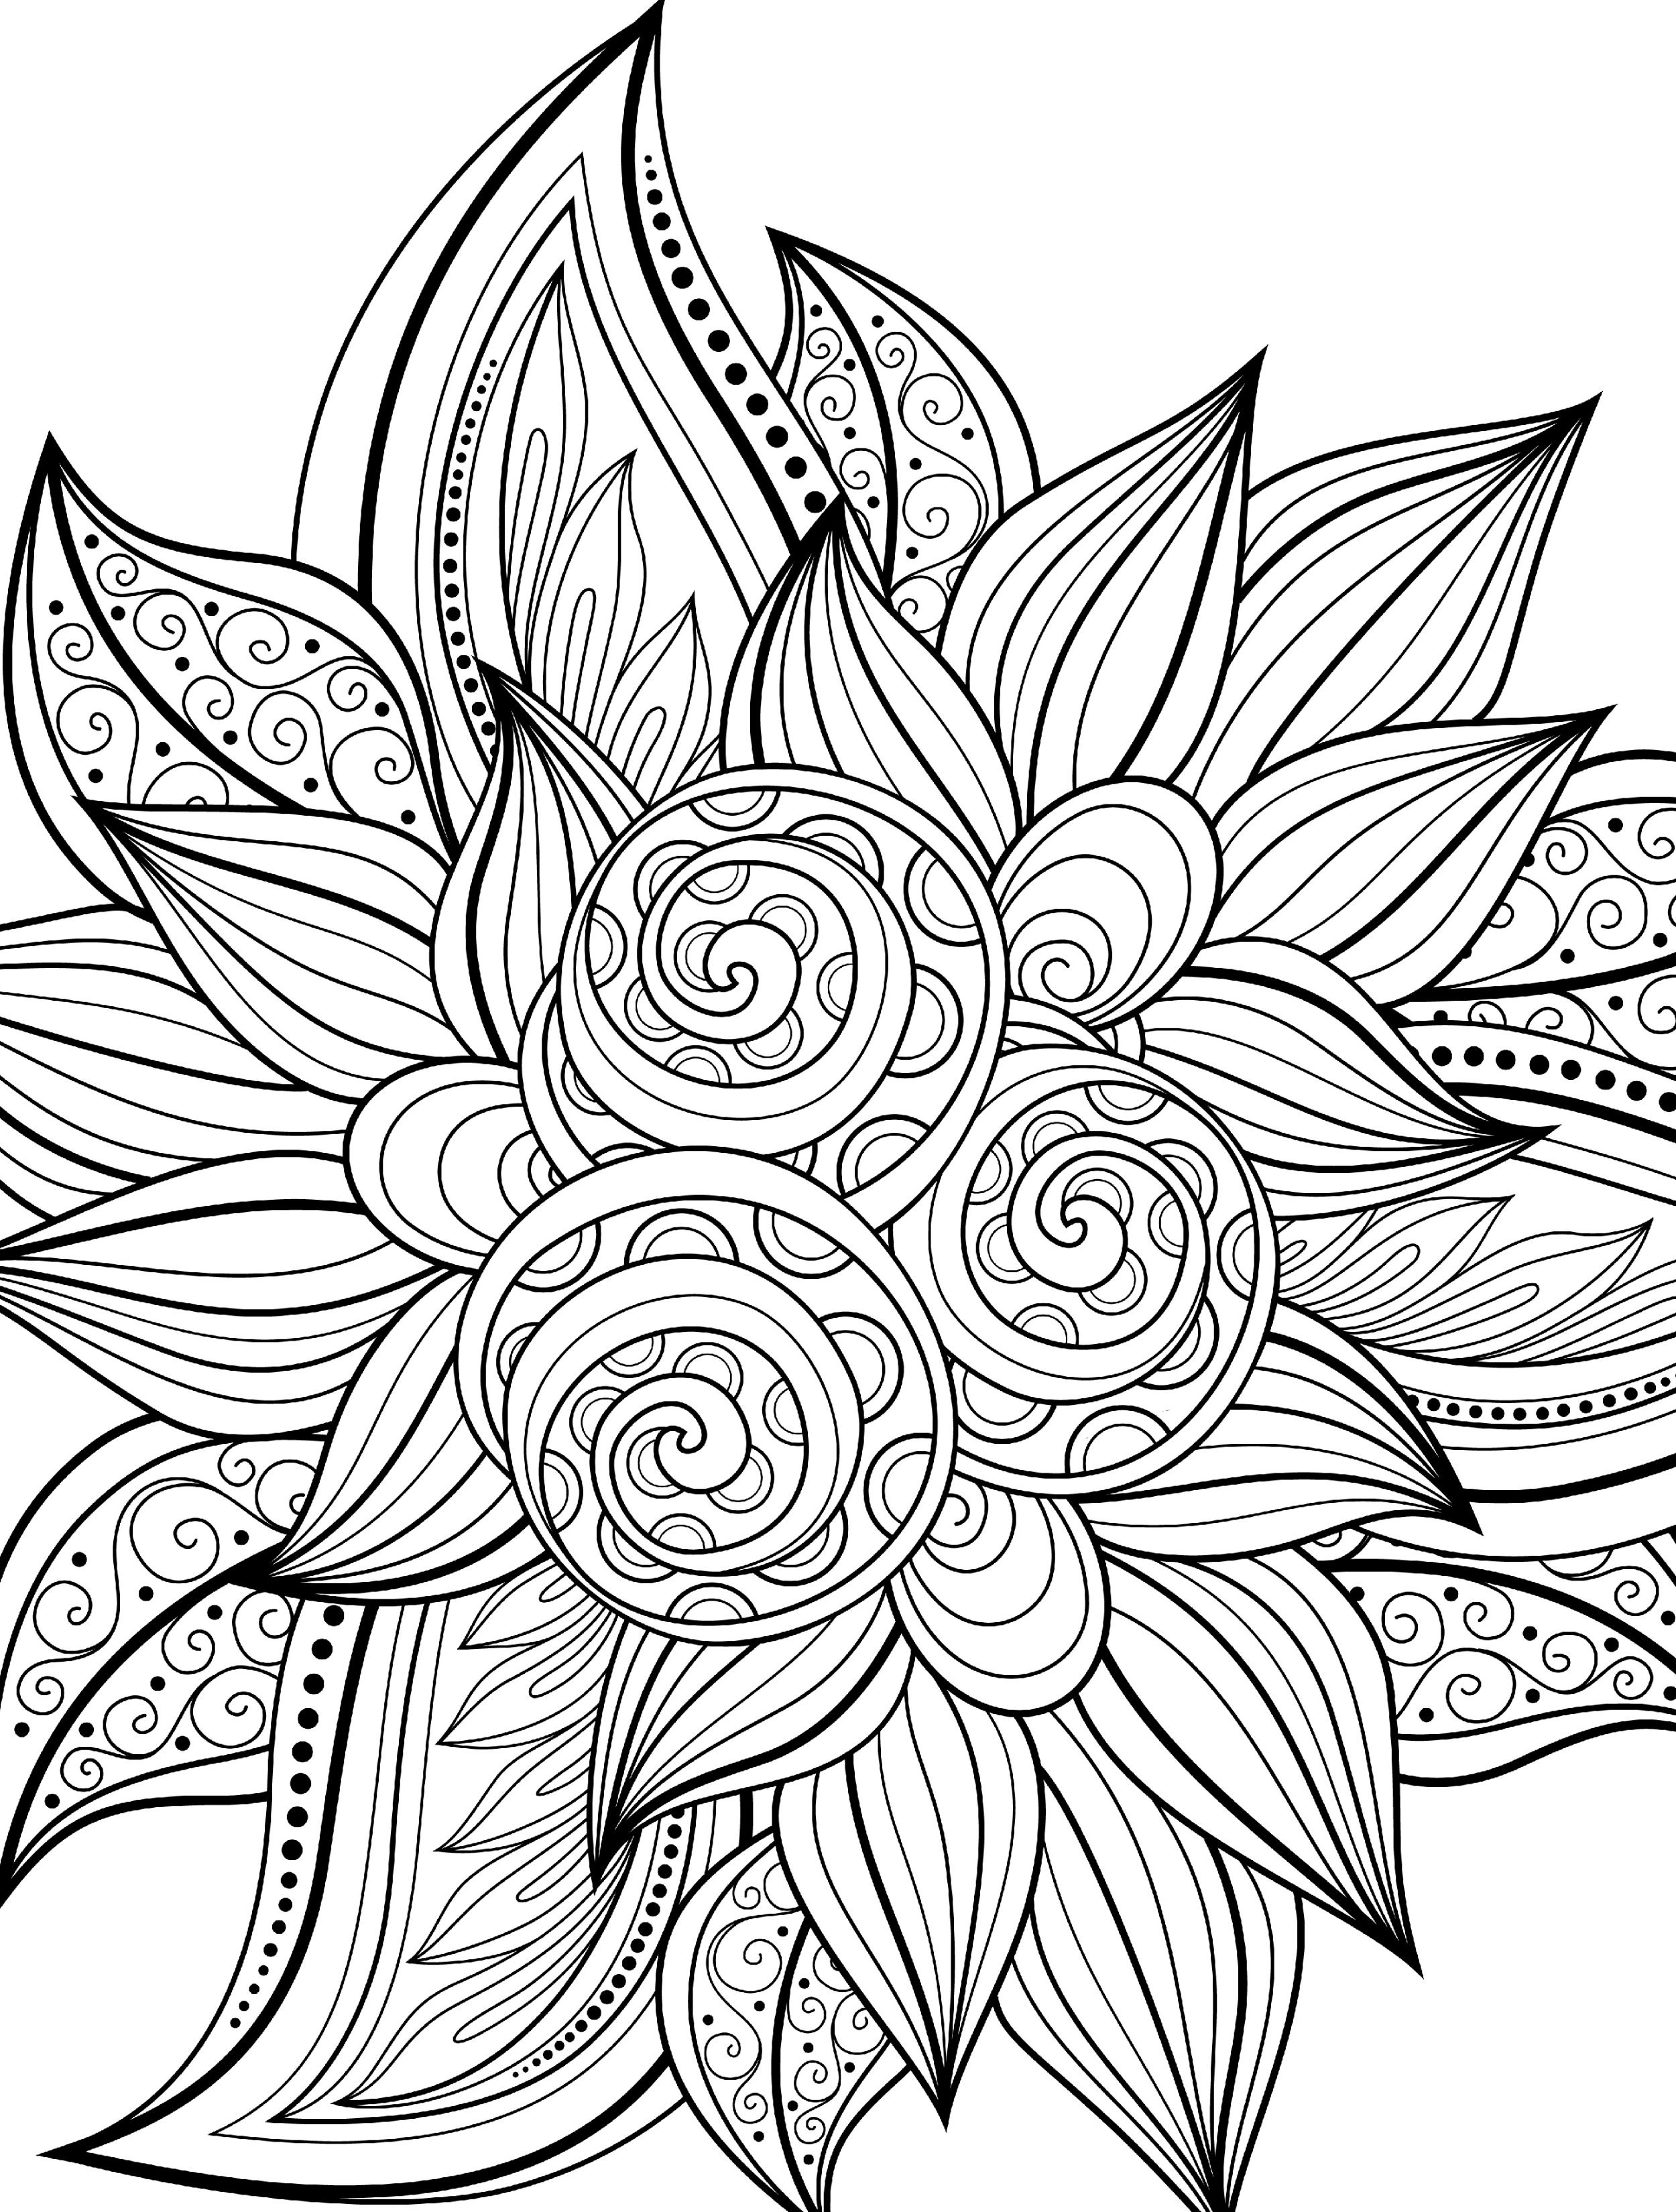 Swirls Printable Free Coloring Page Coloring Pages Pinterest